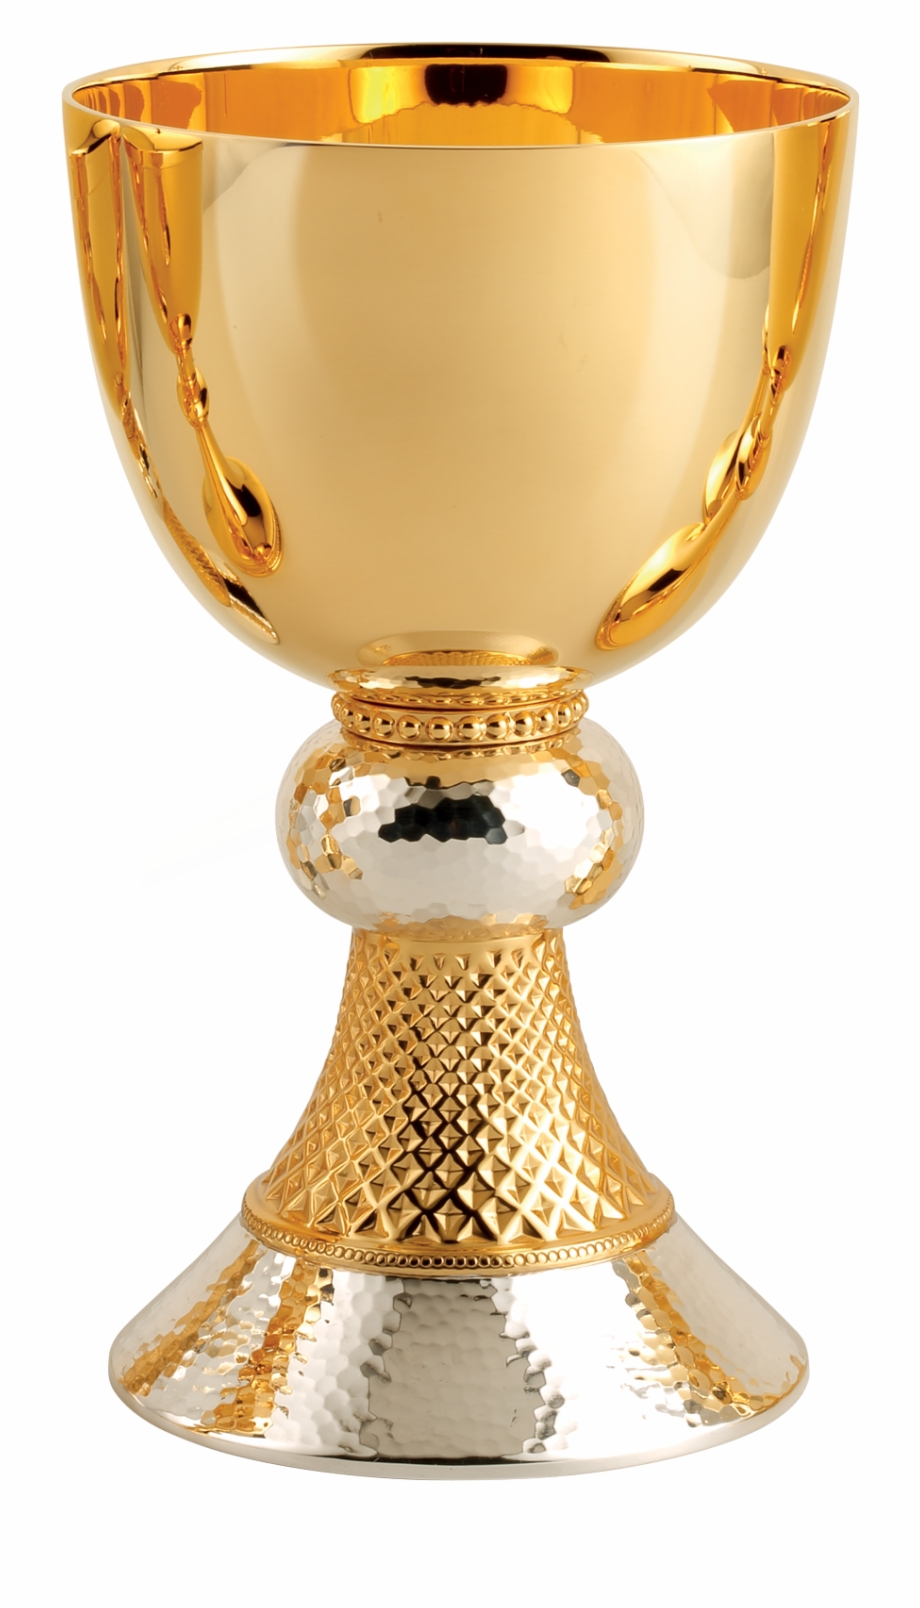 scale paten sacred. Chalice clipart logo